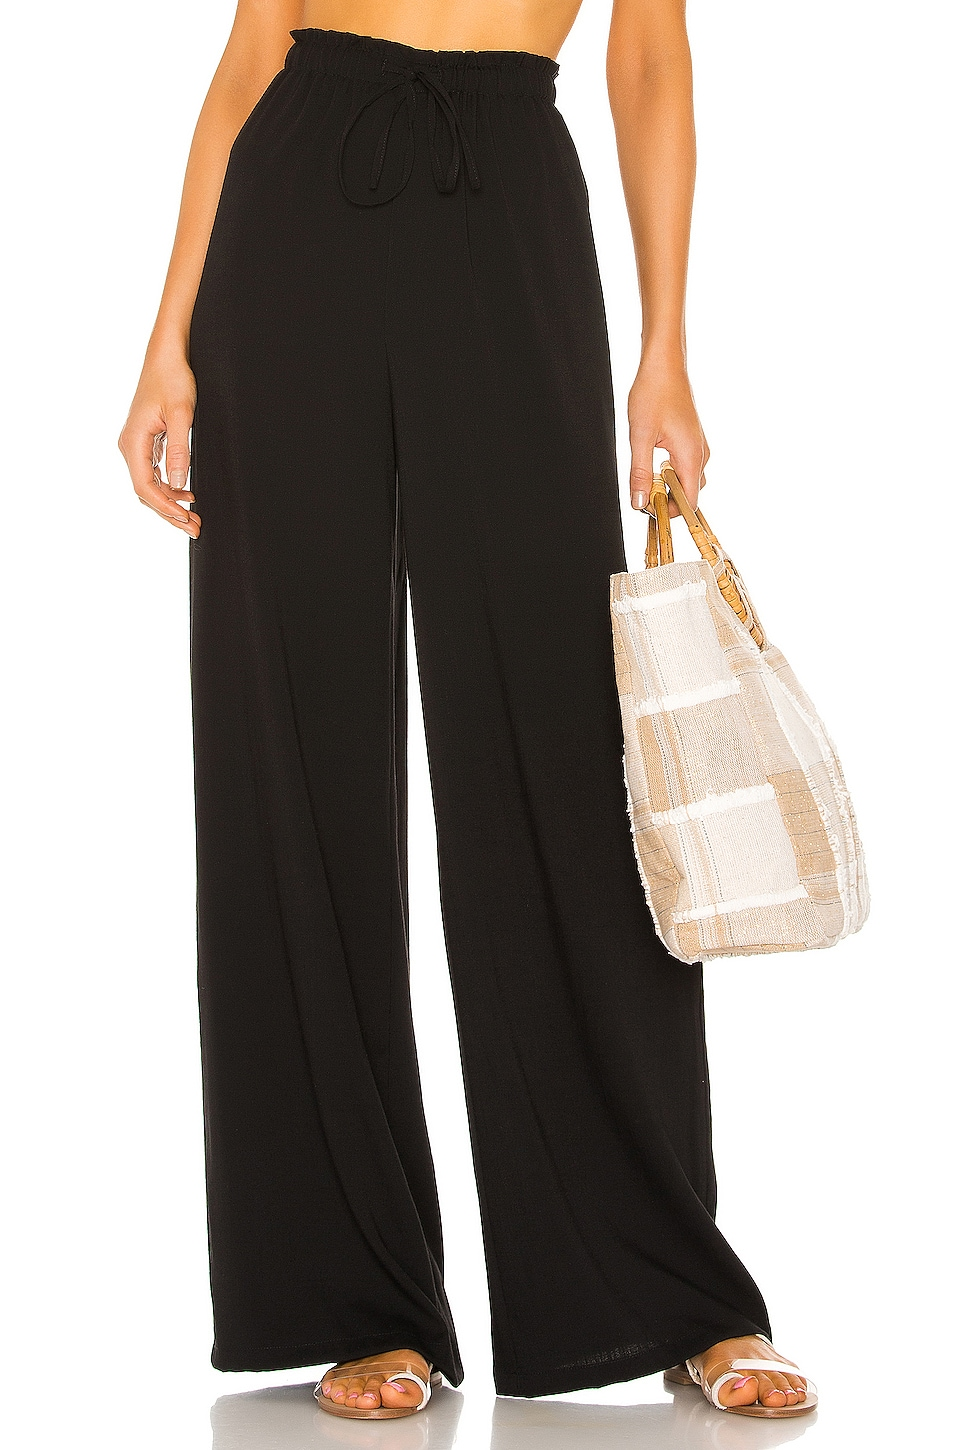 lovewave Kaya Pants in Black